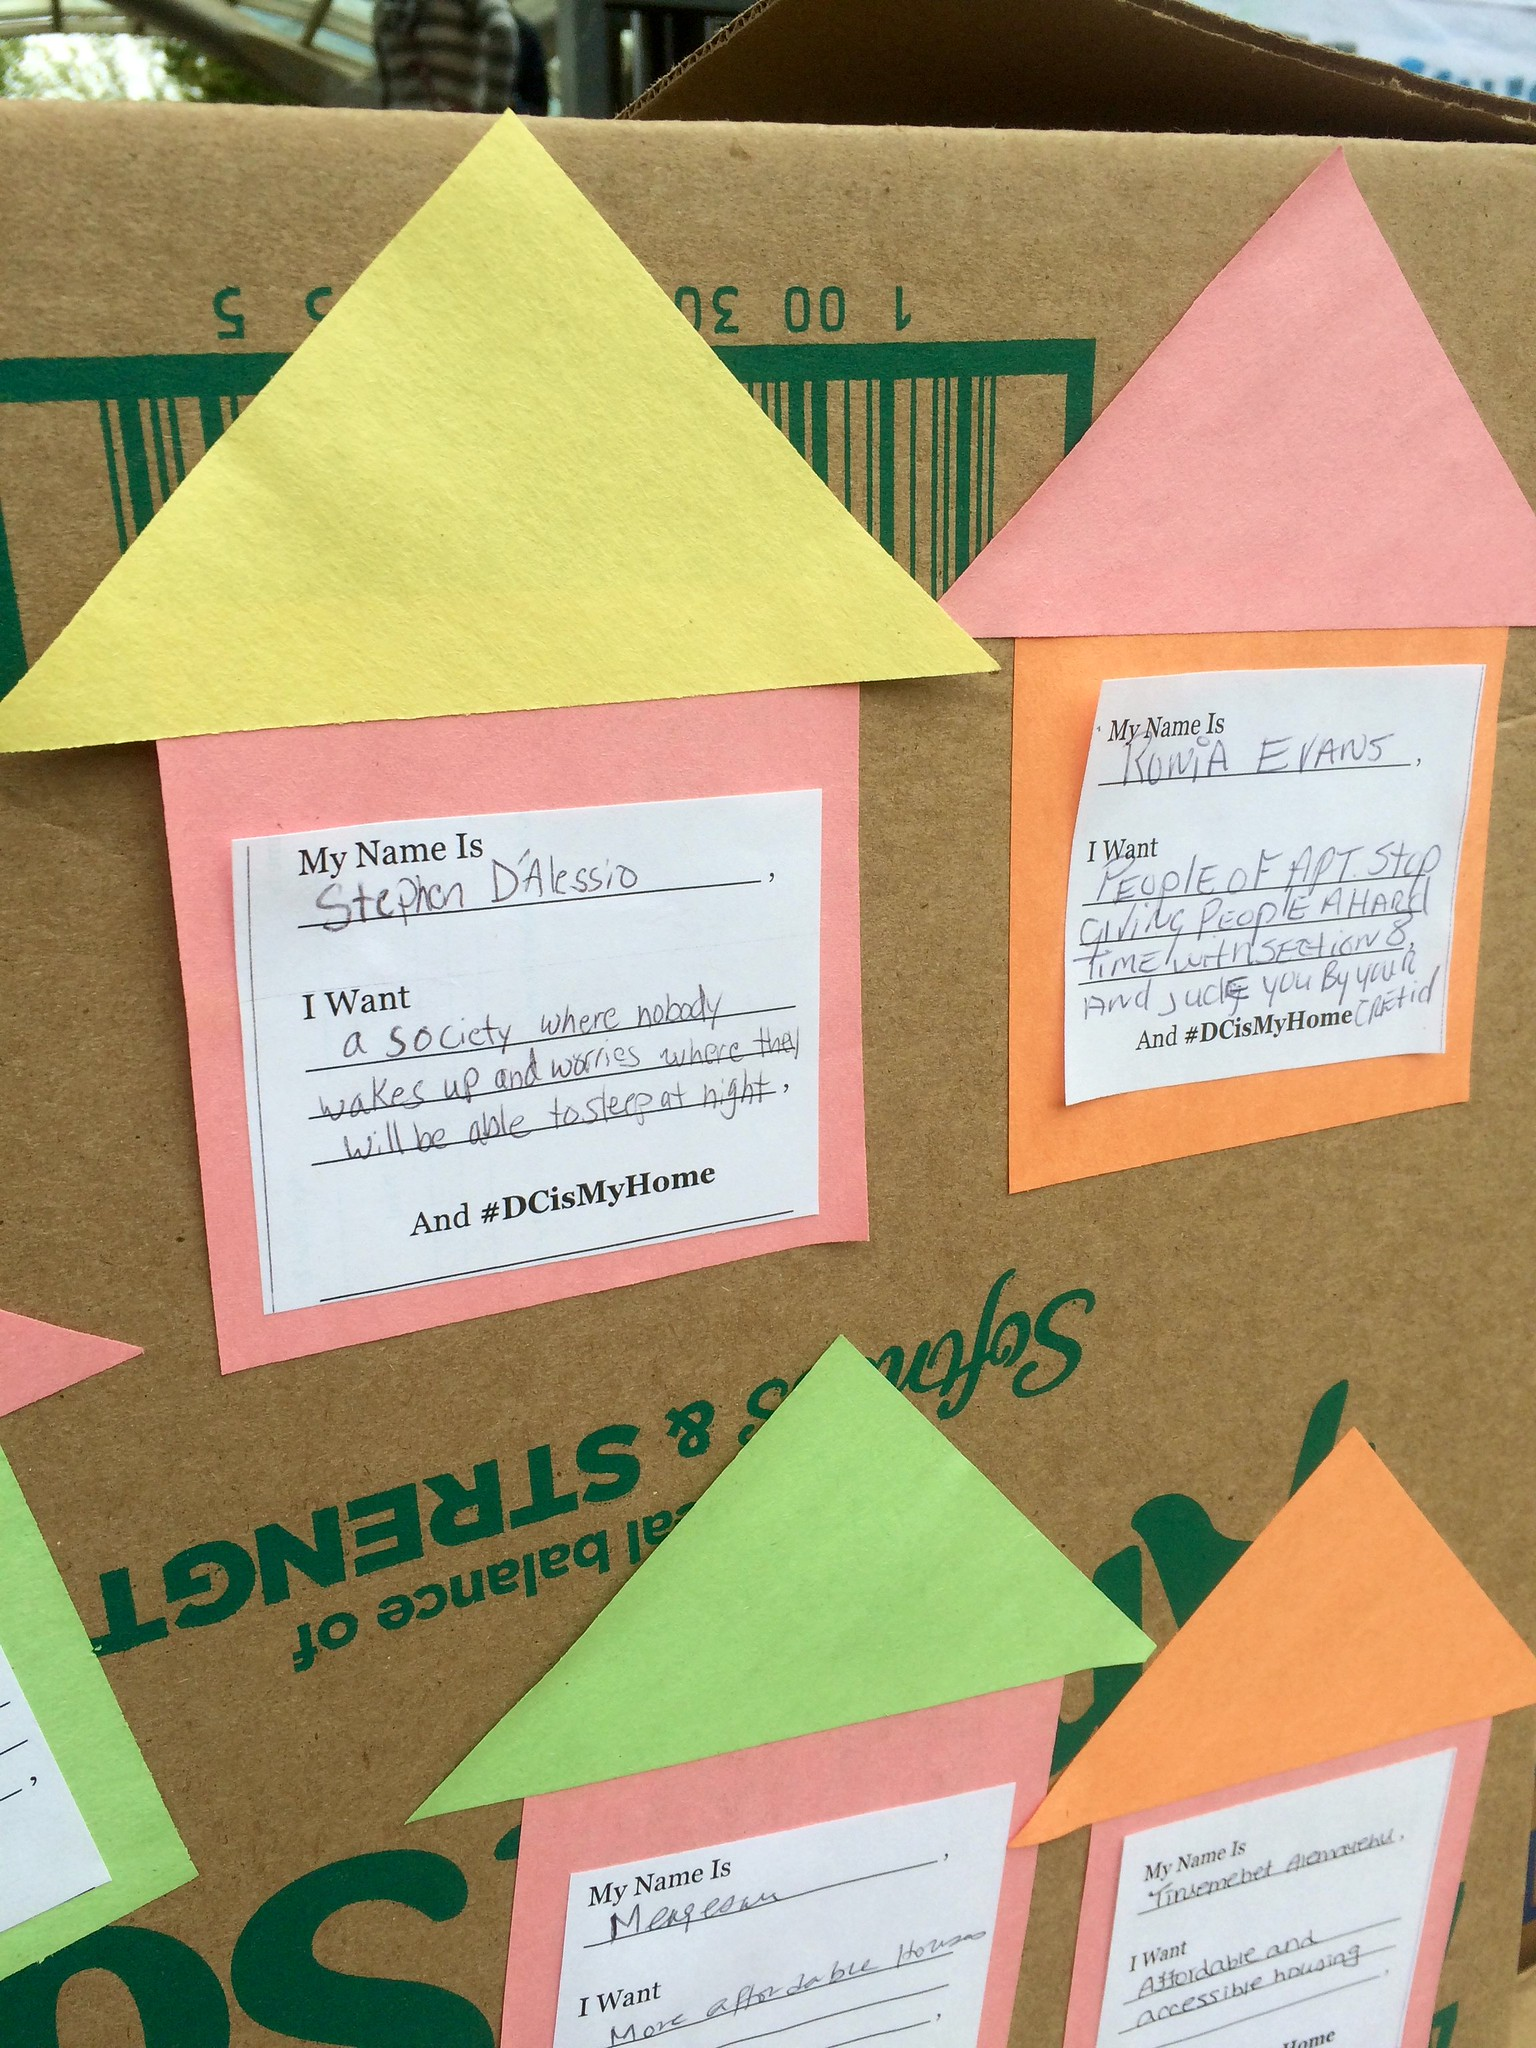 A cardboard box covered with colored paper cut into the shape of houses. People have written their dreams for the future of D.C. on the paper houses.